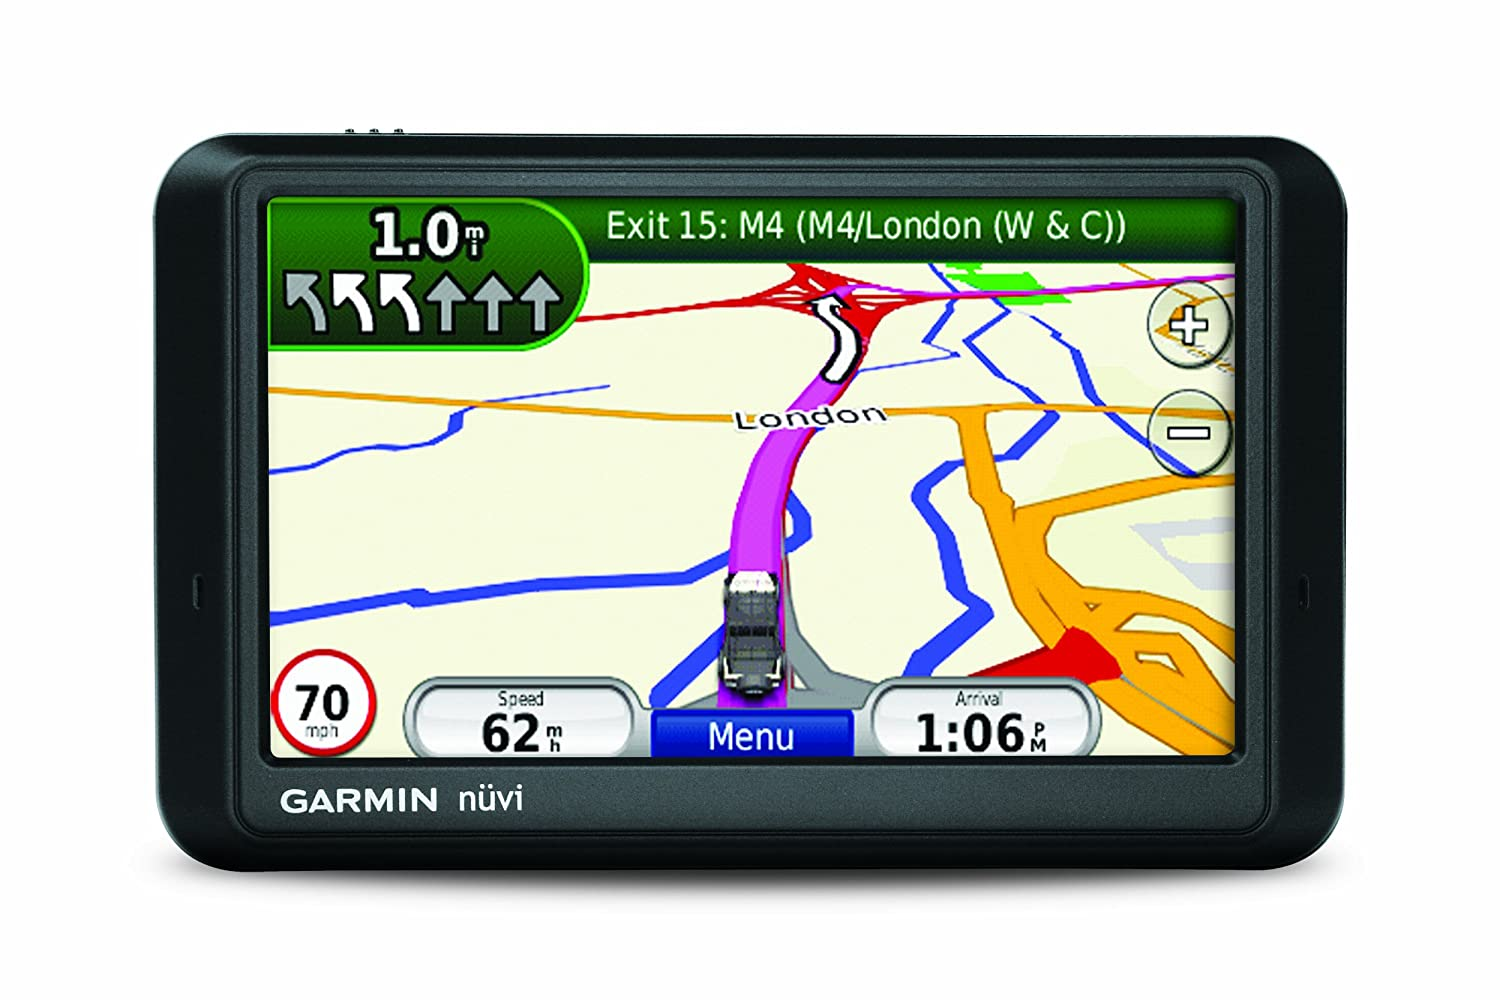 garmin nuvi 765t map